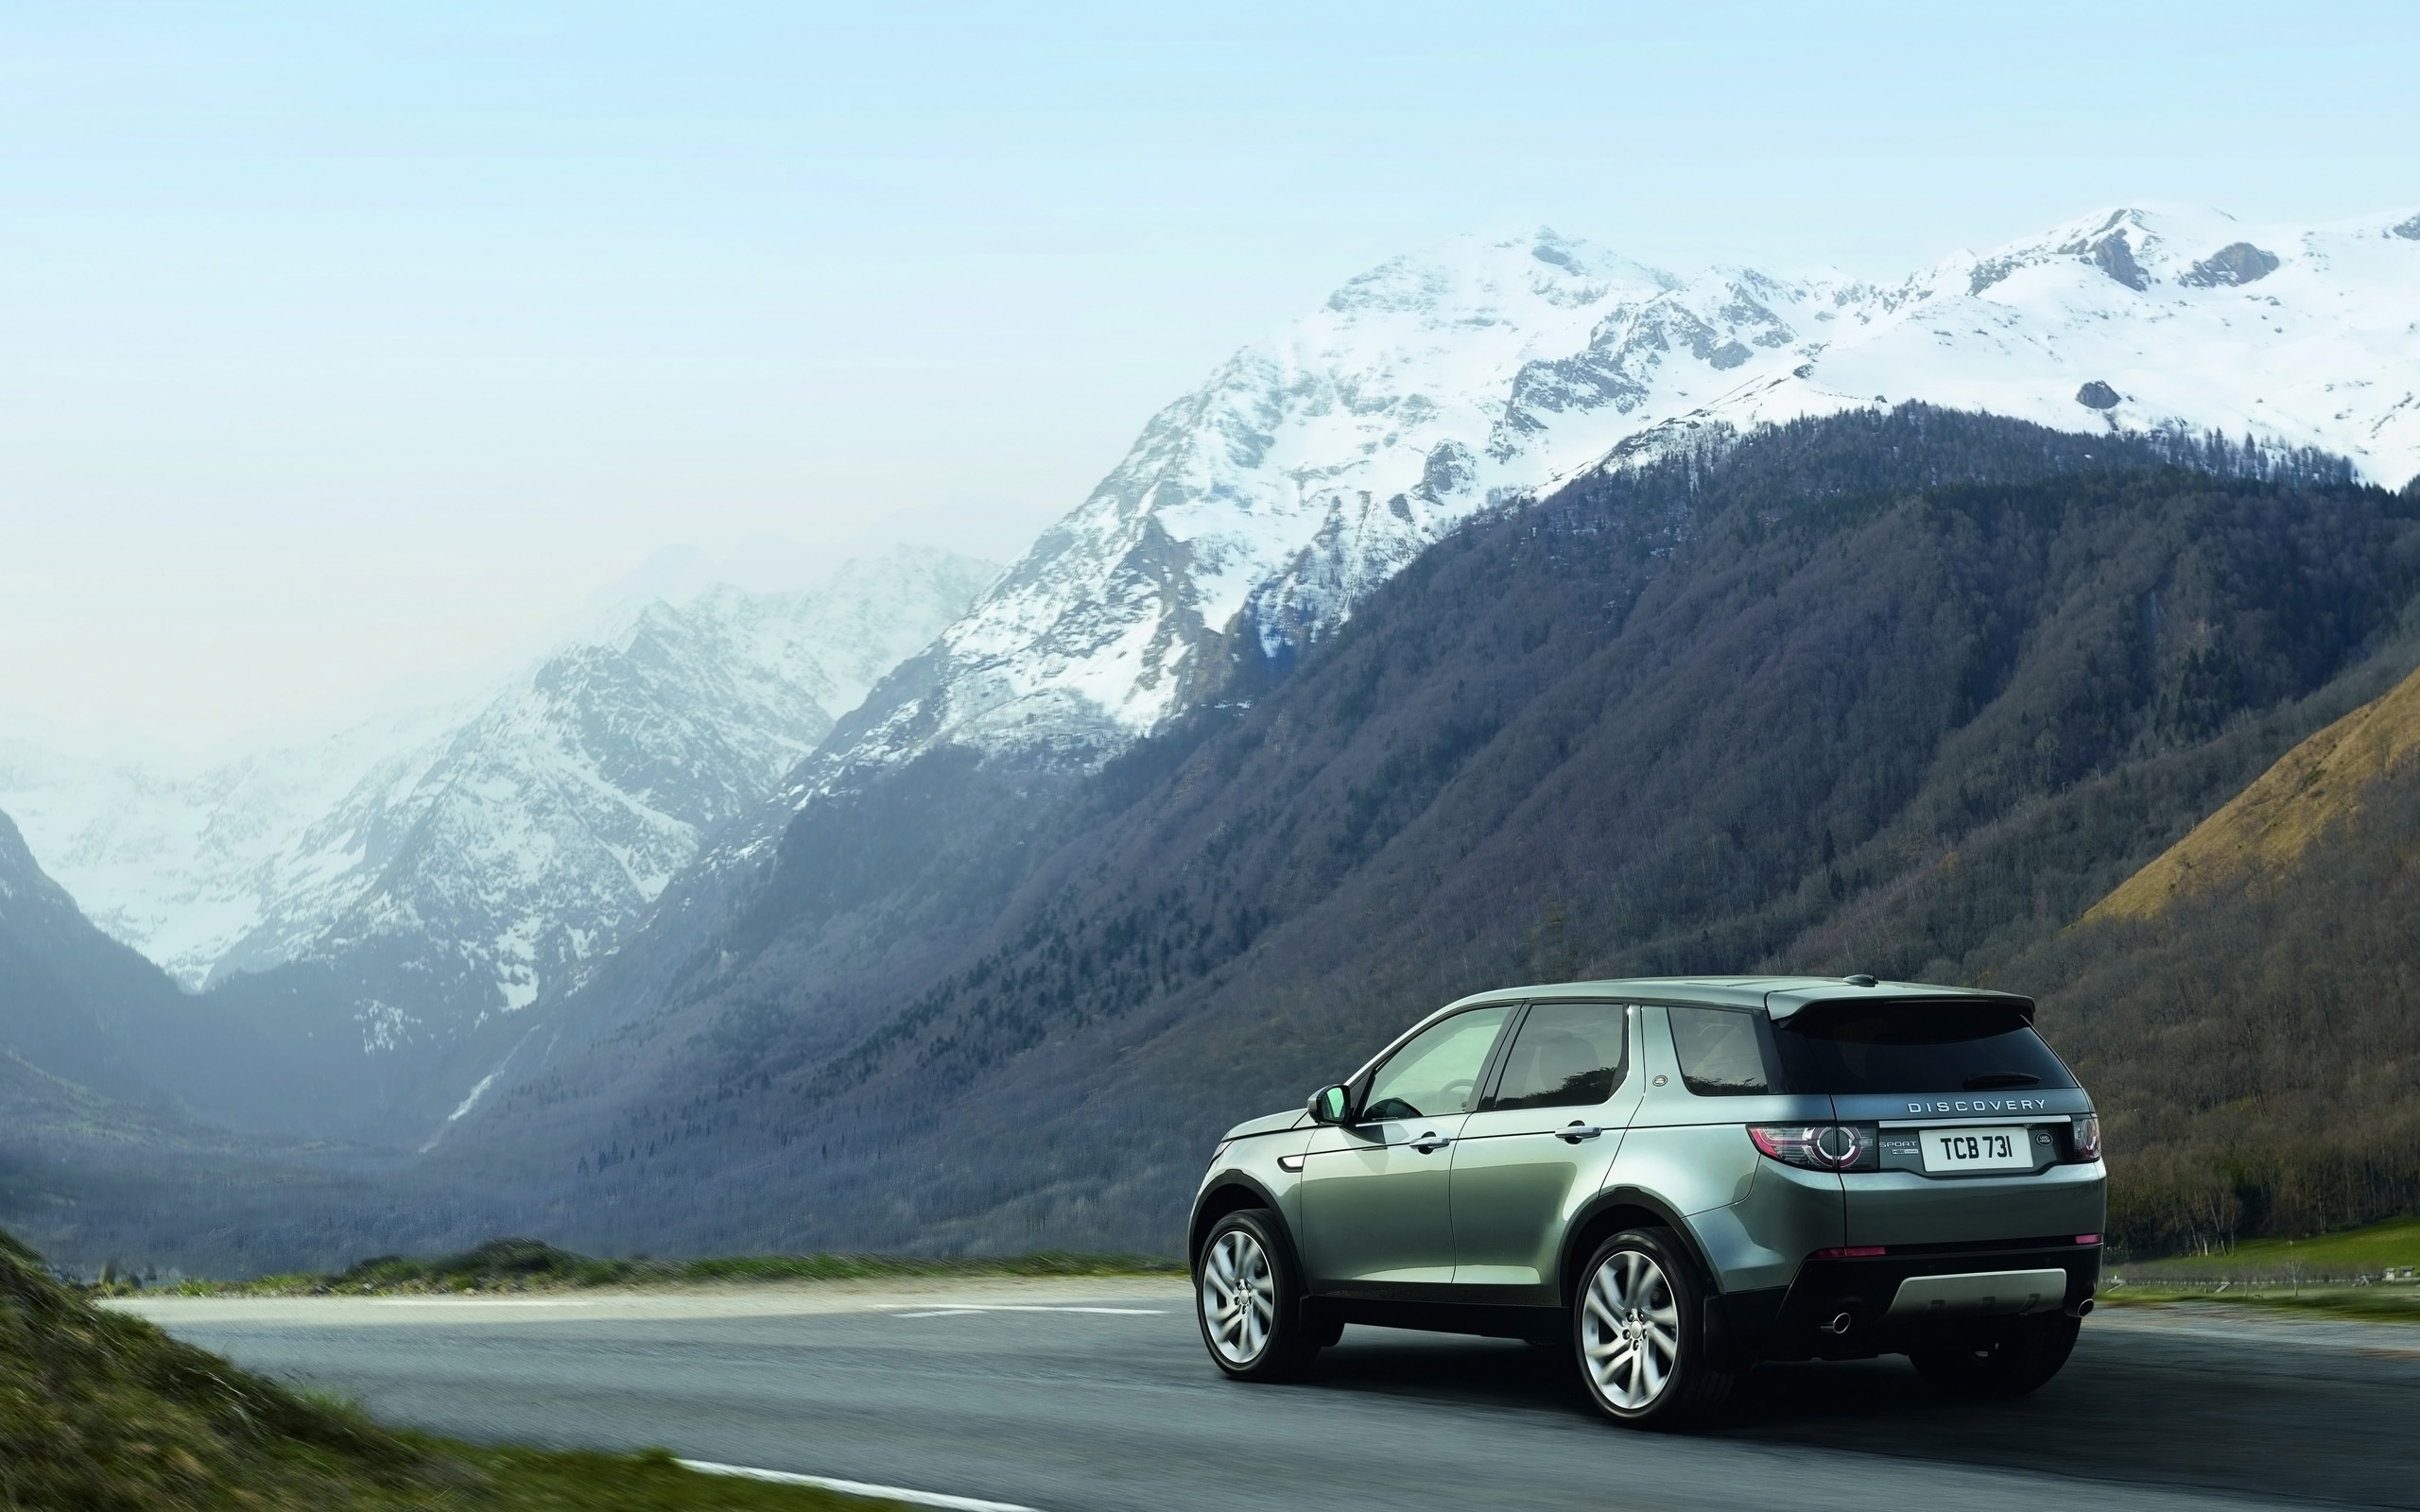 Range Rover Sport Iphone Wallpaper: 2015 Land Rover Discovery Sport Motion Rear Angle